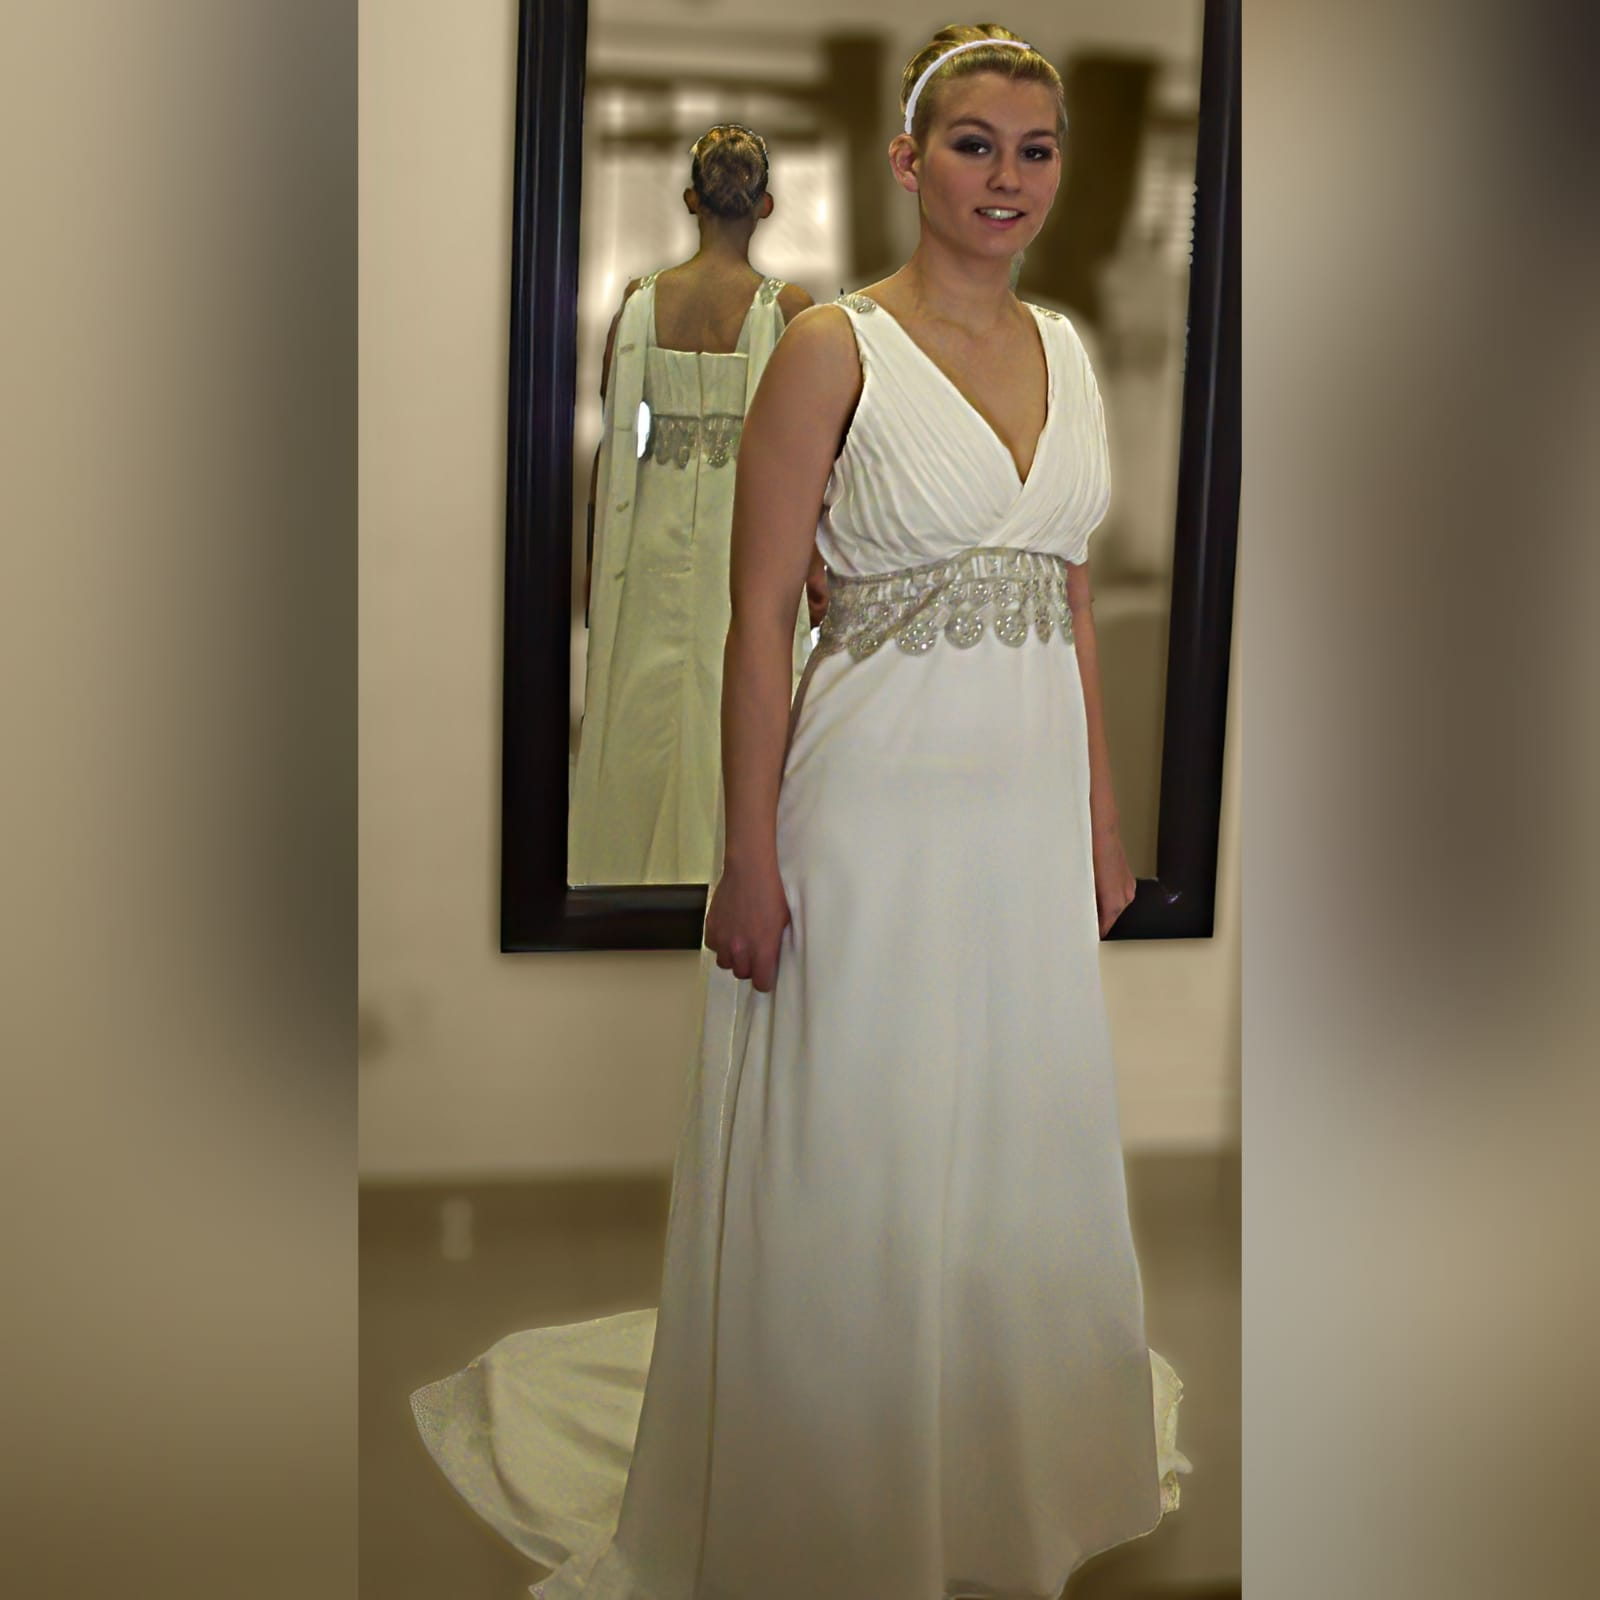 Ivory cross busted wedding dress with train 1 ivory cross busted wedding dress with an added back panel creating a train. Two long shoulder chiffon pieces decorated with bronze embroidery detail and under bust finish this wedding dress off.